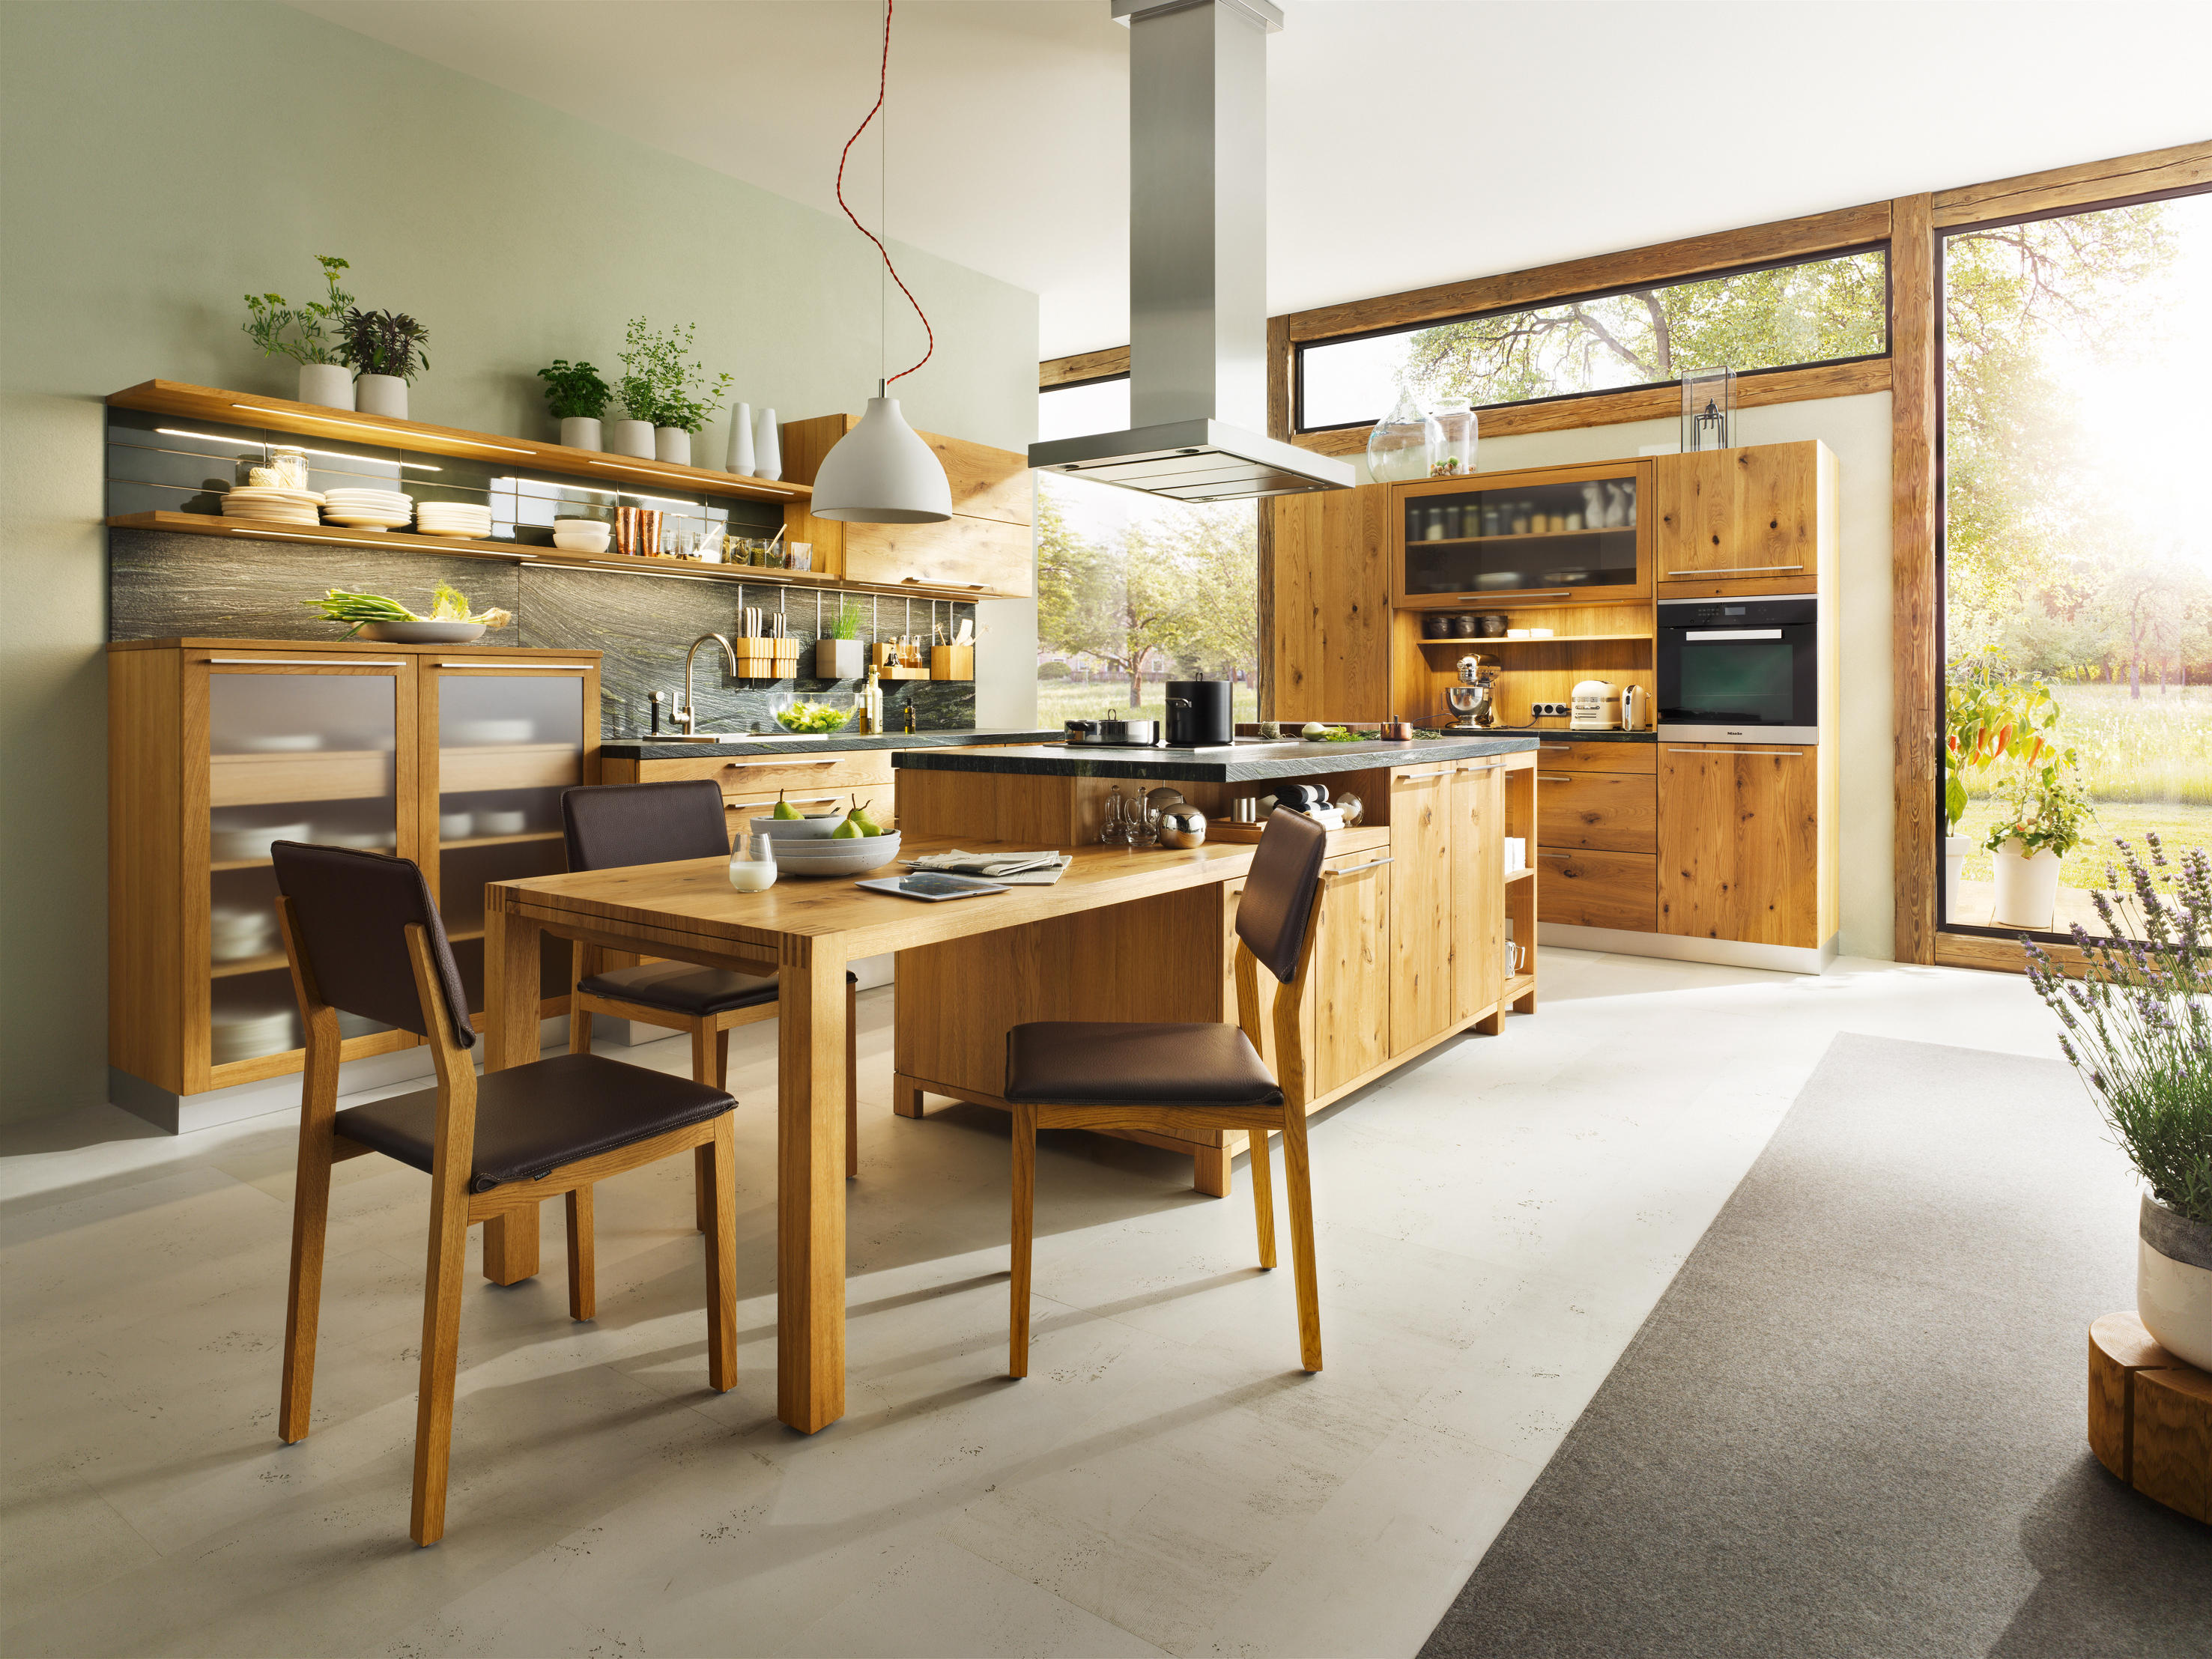 Küche team 7  LOFT KITCHEN - Fitted kitchens from TEAM 7 | Architonic